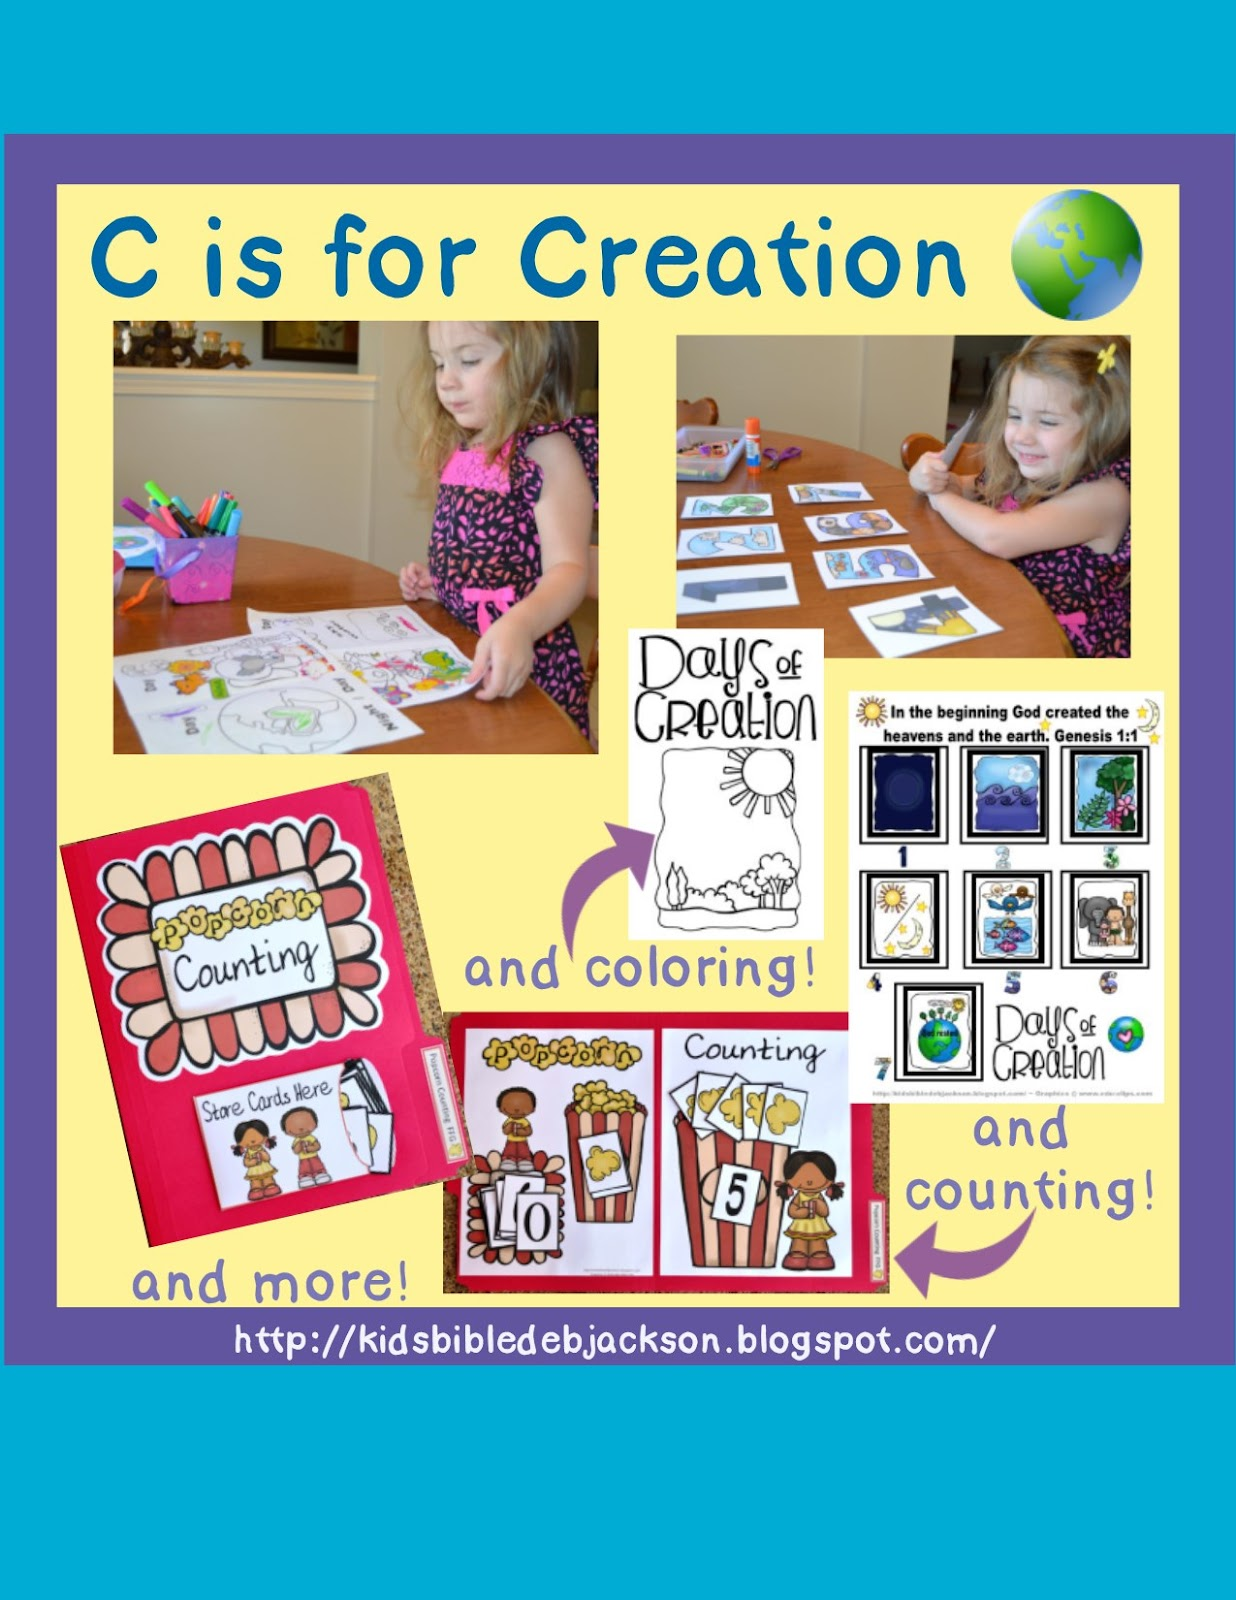 http://kidsbibledebjackson.blogspot.com/2014/08/preschool-alphabet-c-is-for-creation.html